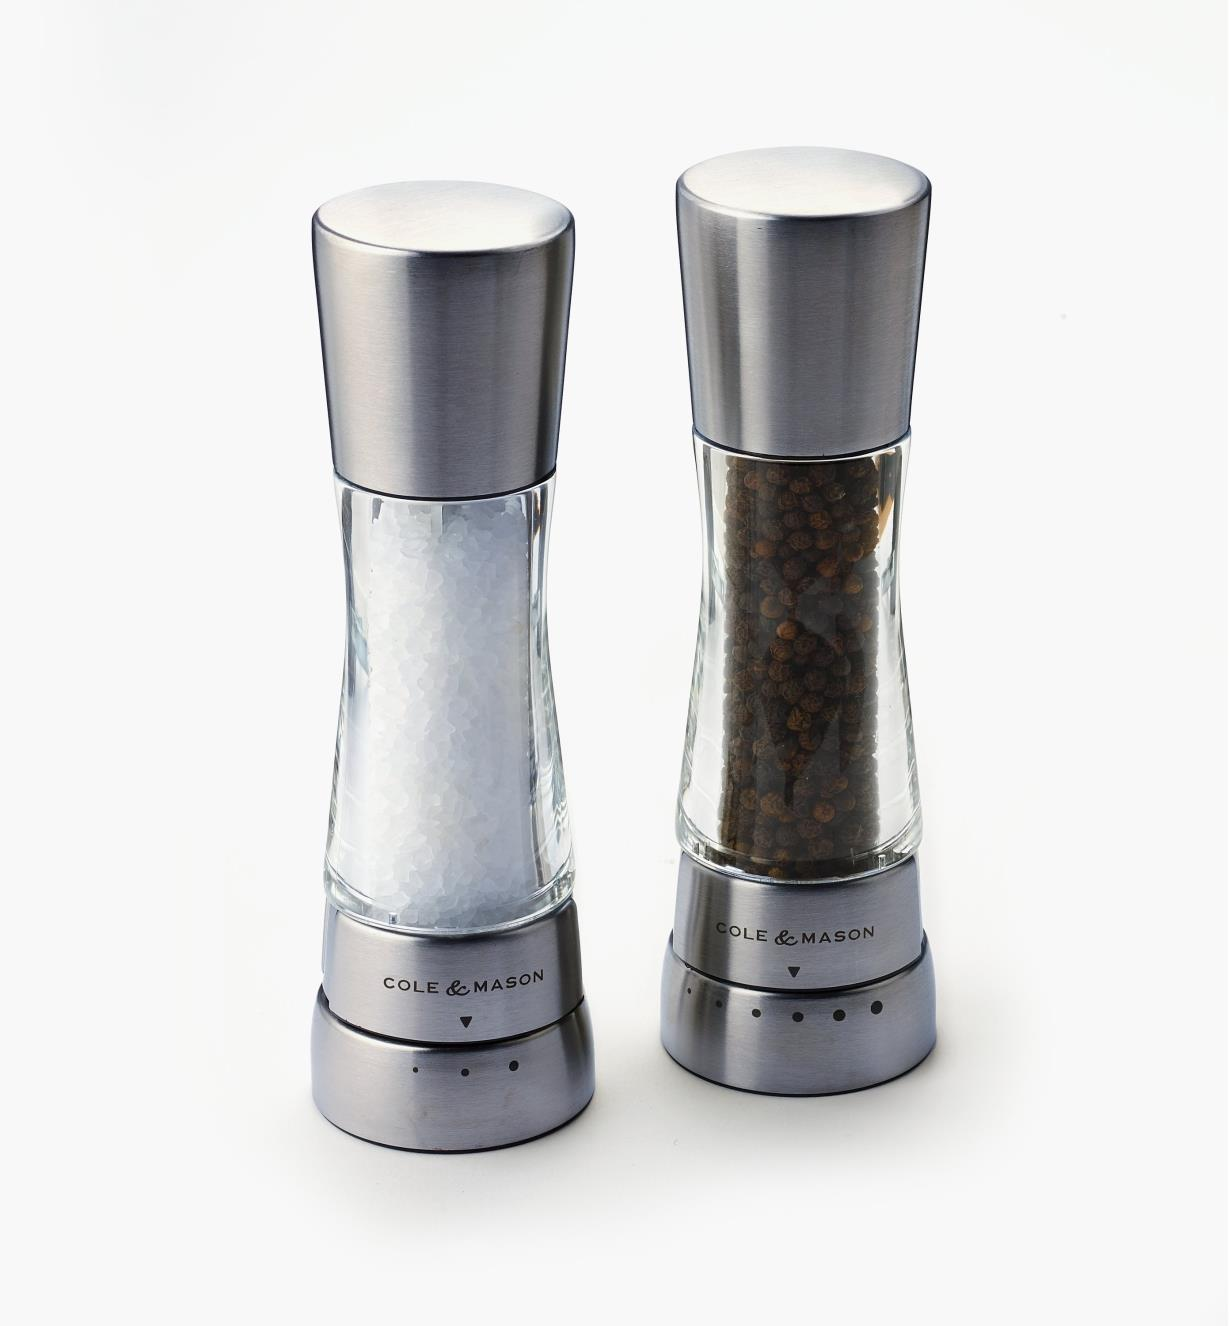 MP111 - Cole & Mason Salt & Pepper Mill Set